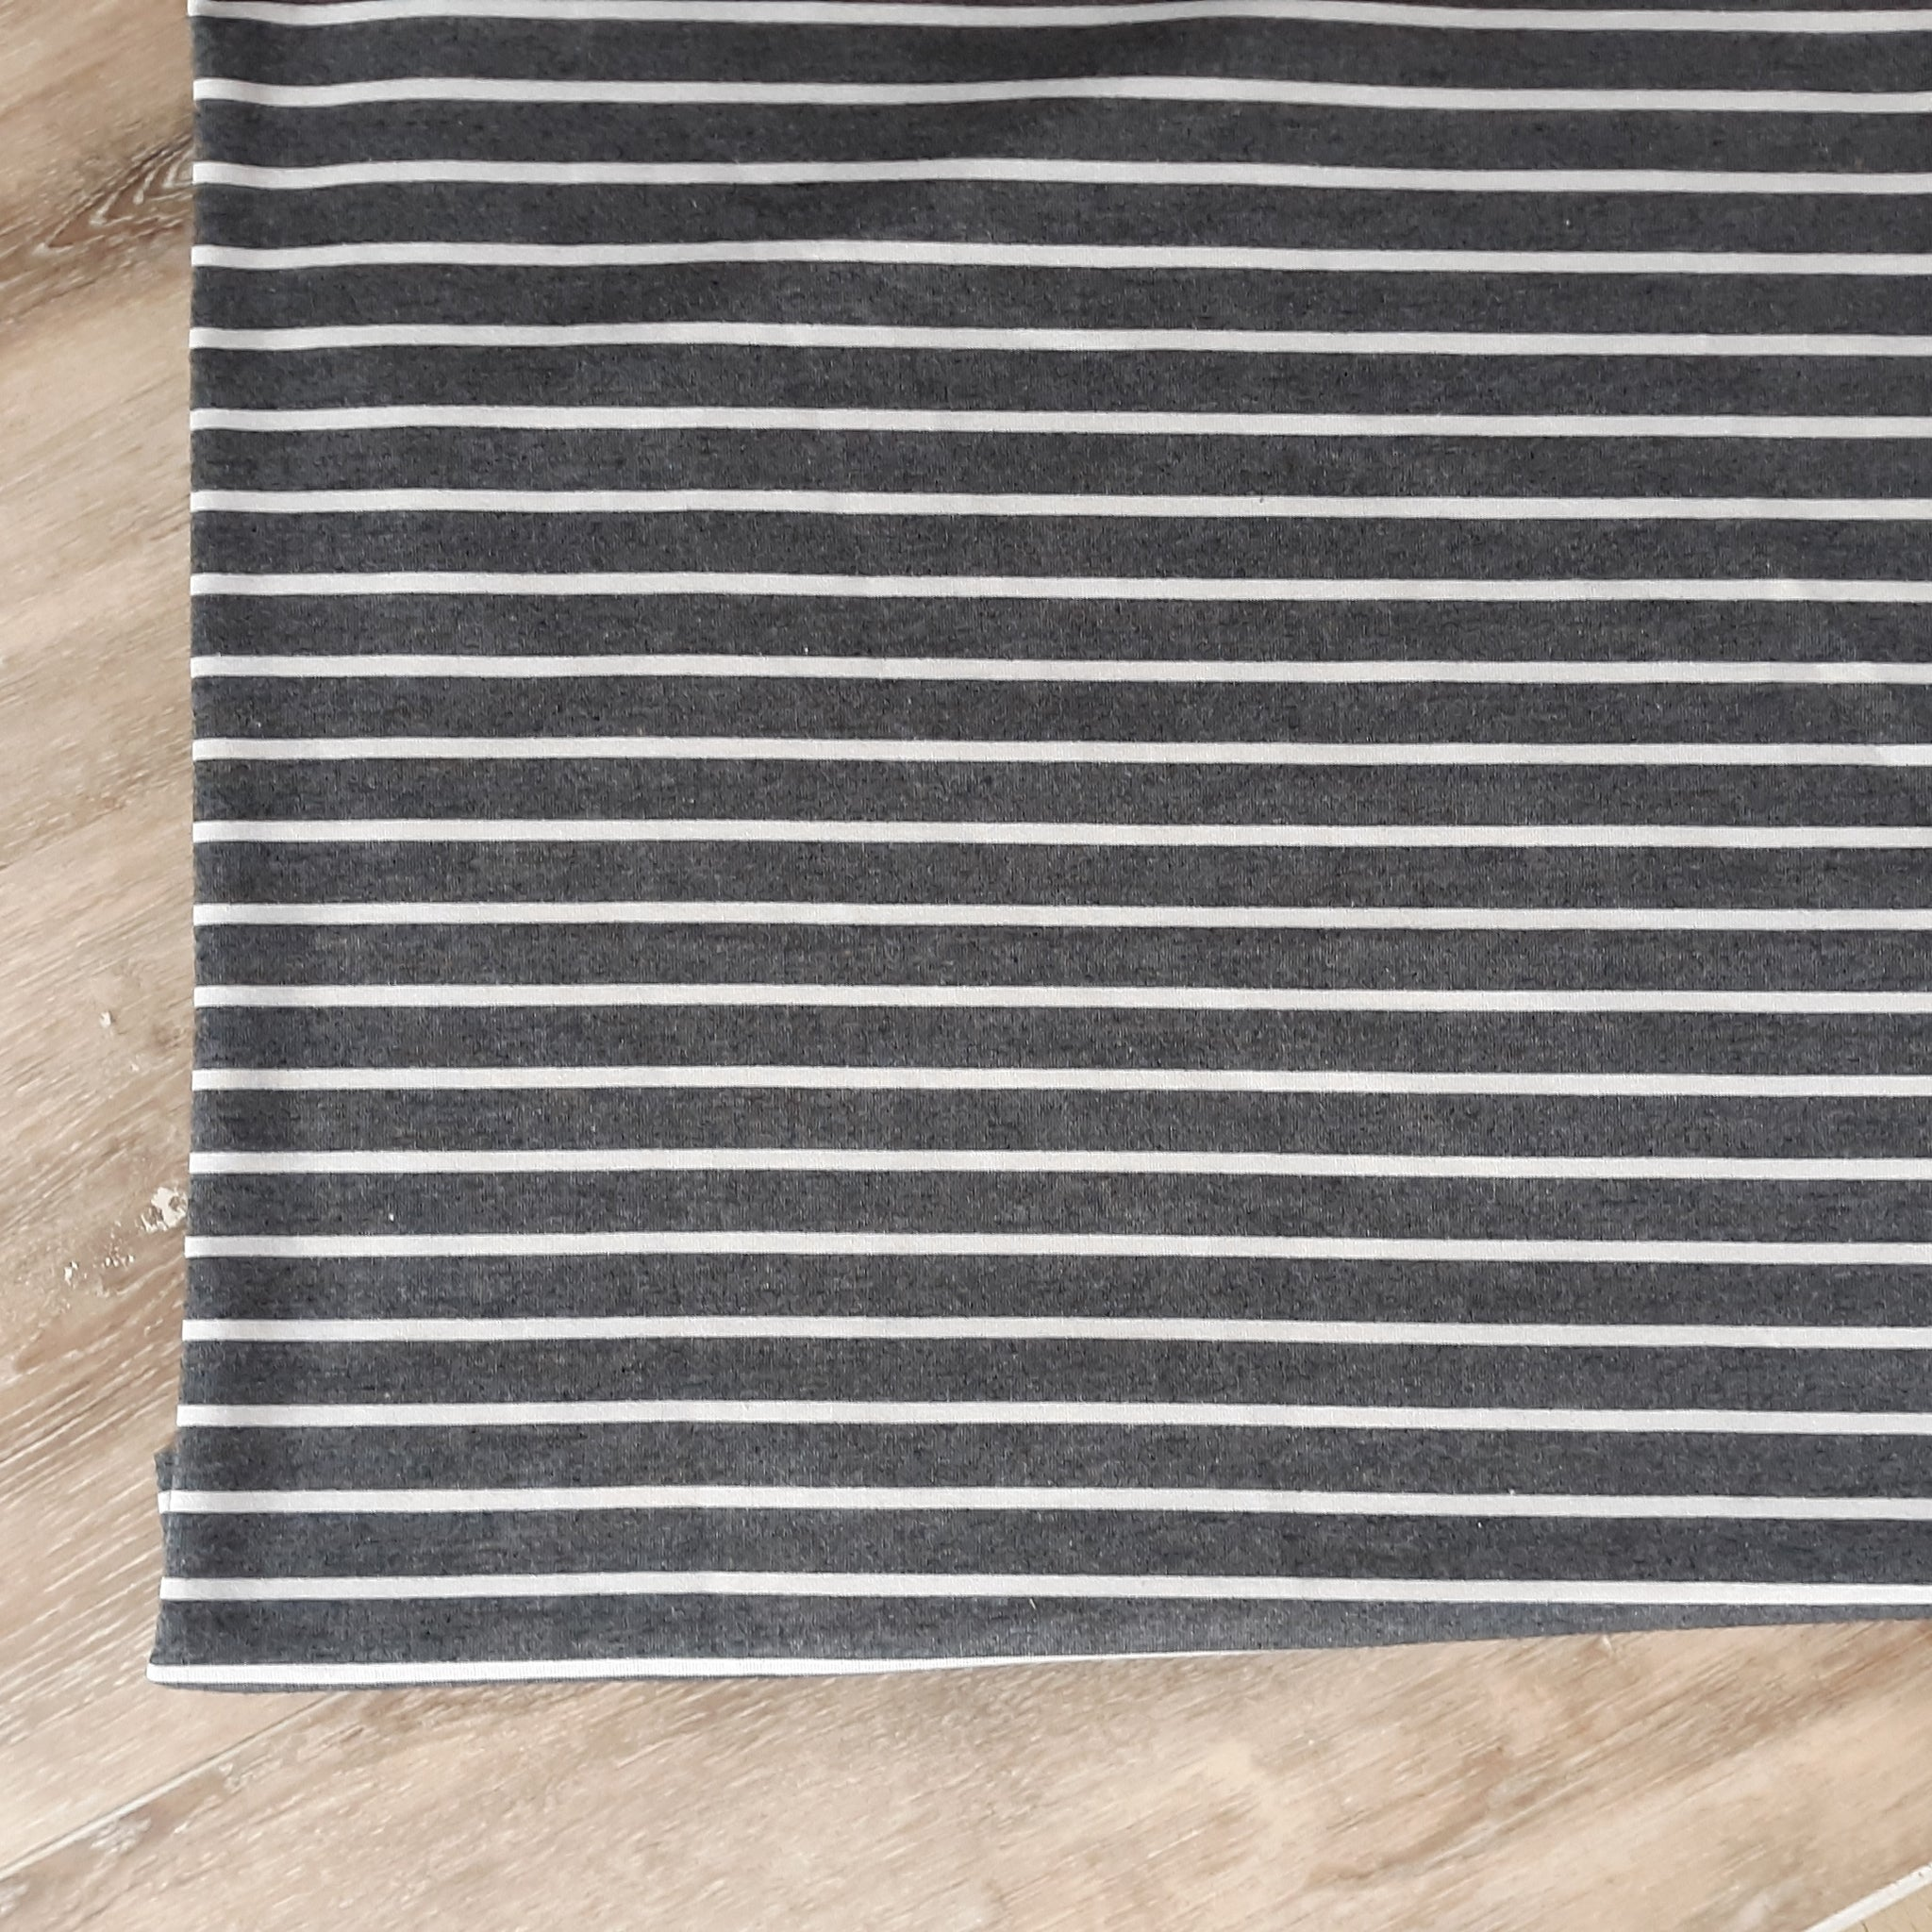 French Terry Charcoal with Ivory Stripes| By the Half Yard